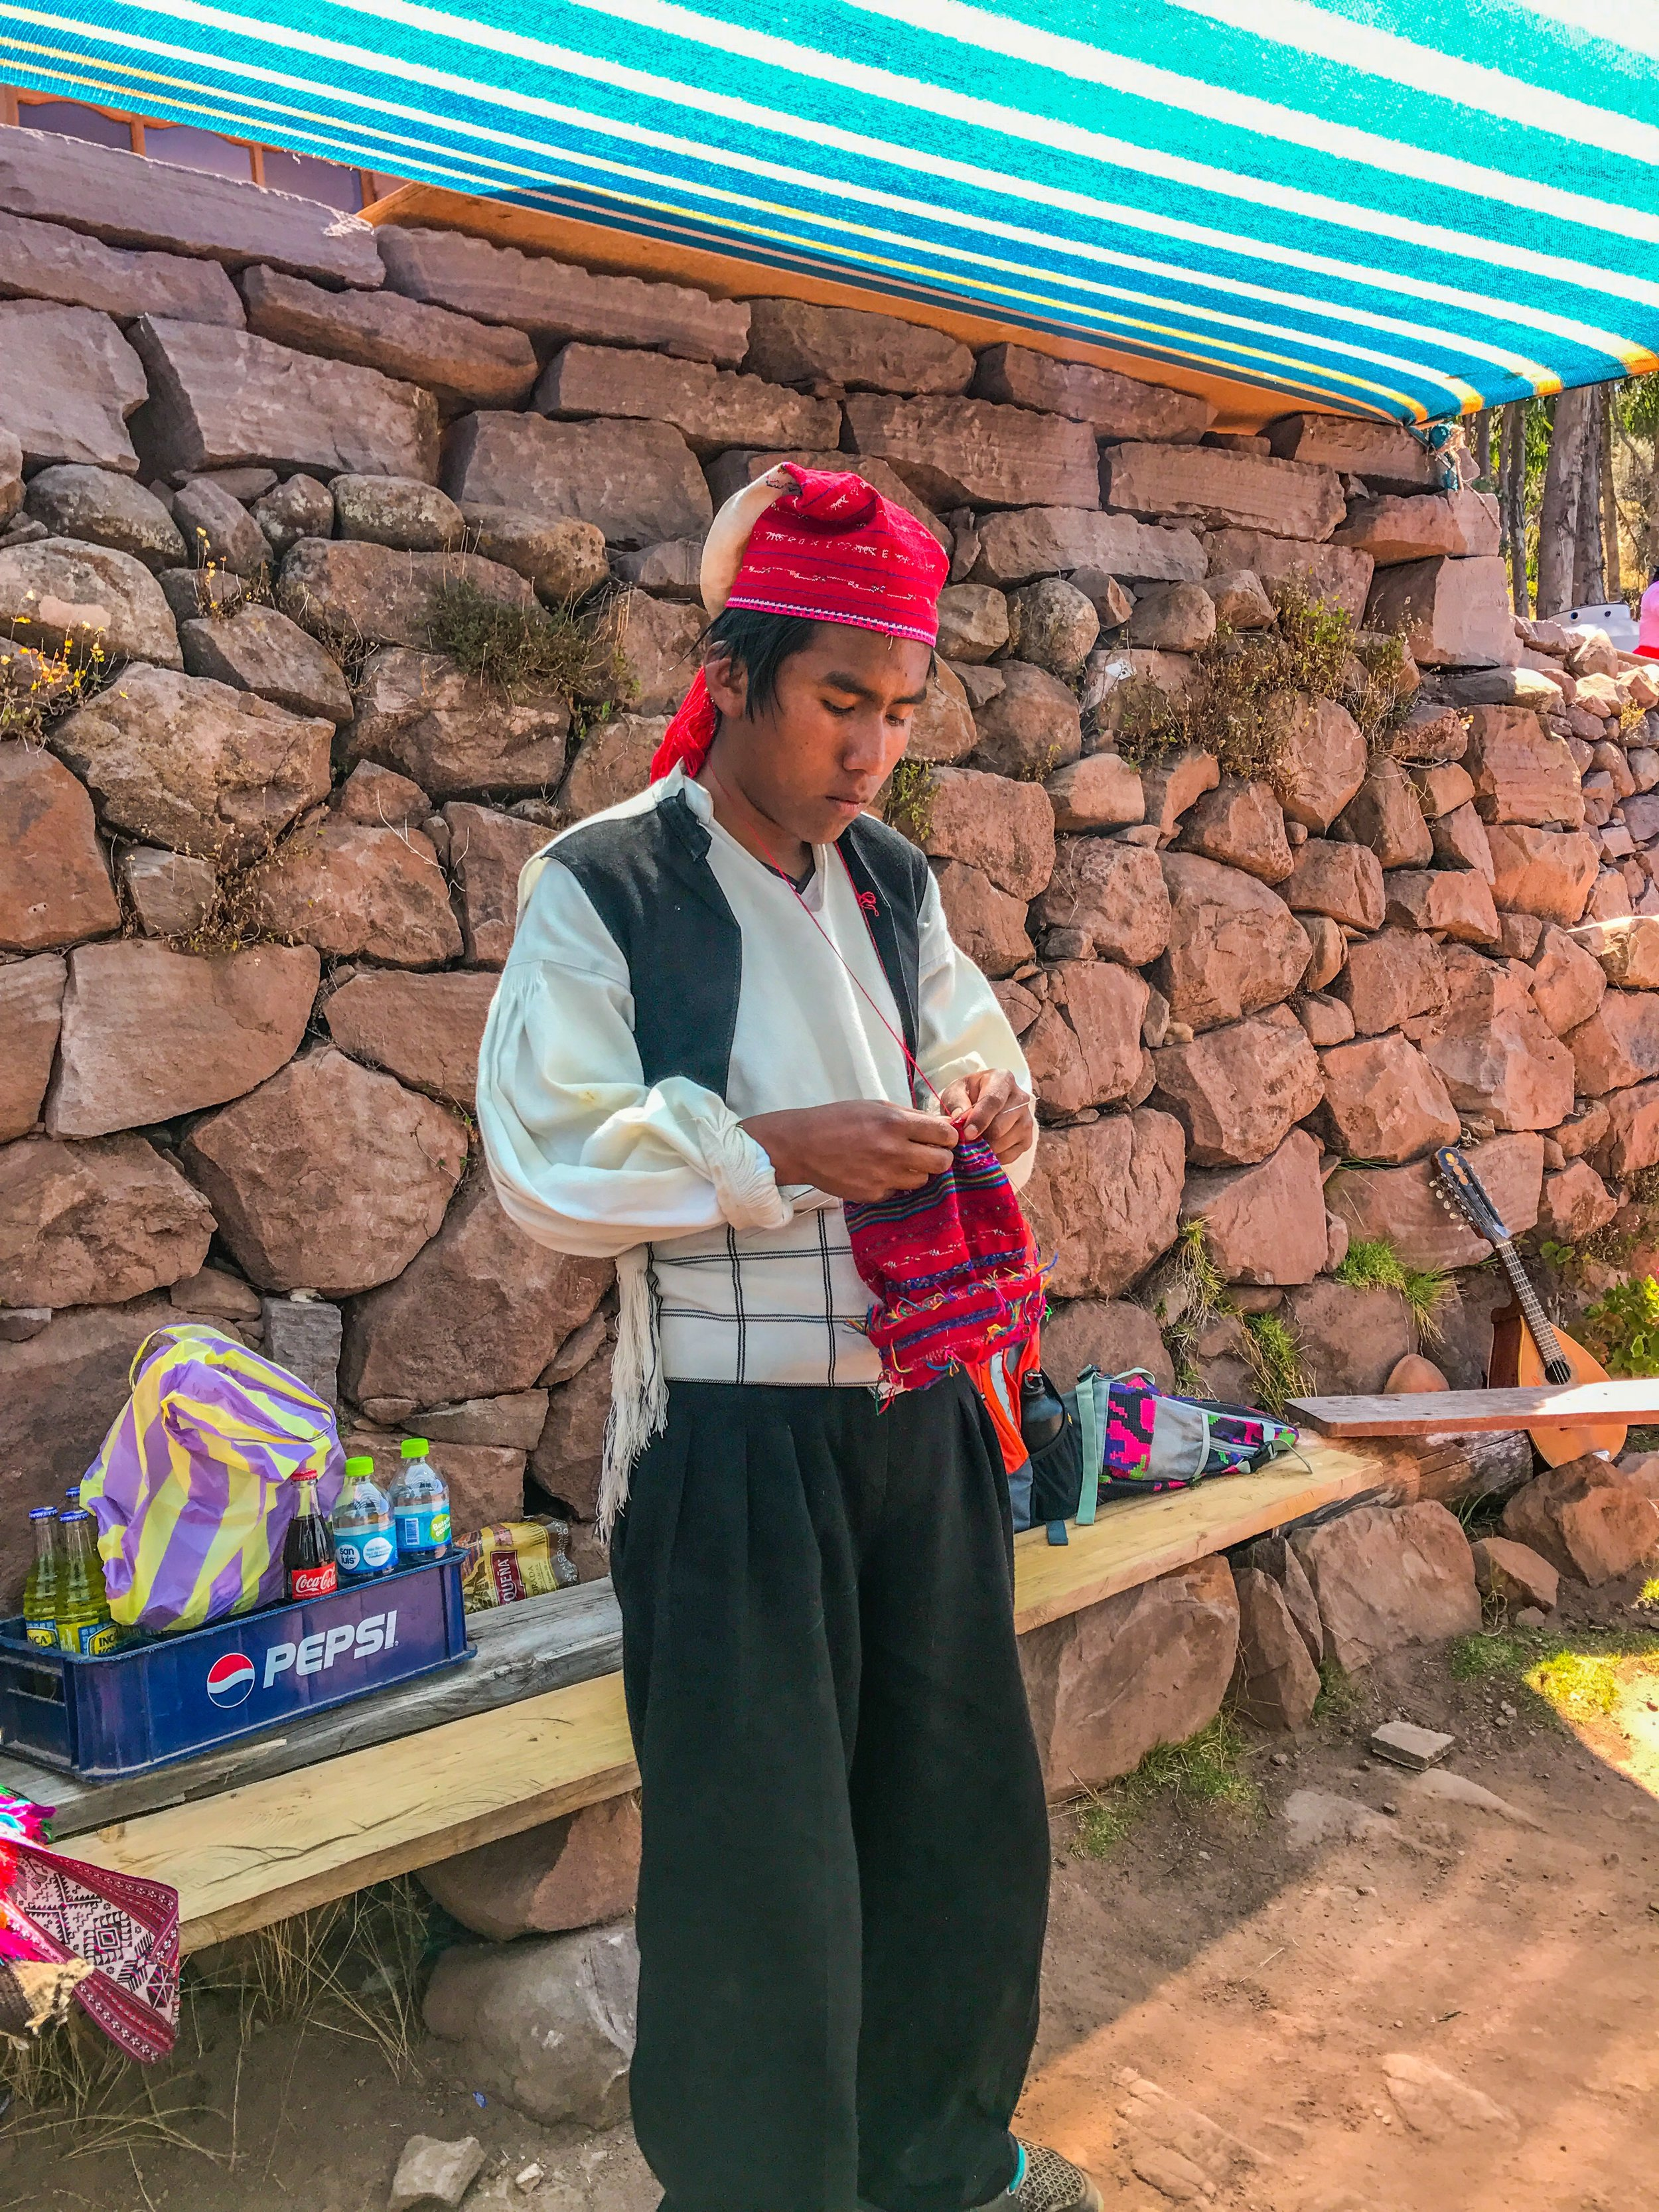 A young (and single) Taquile boy demonstrates his knitting skills